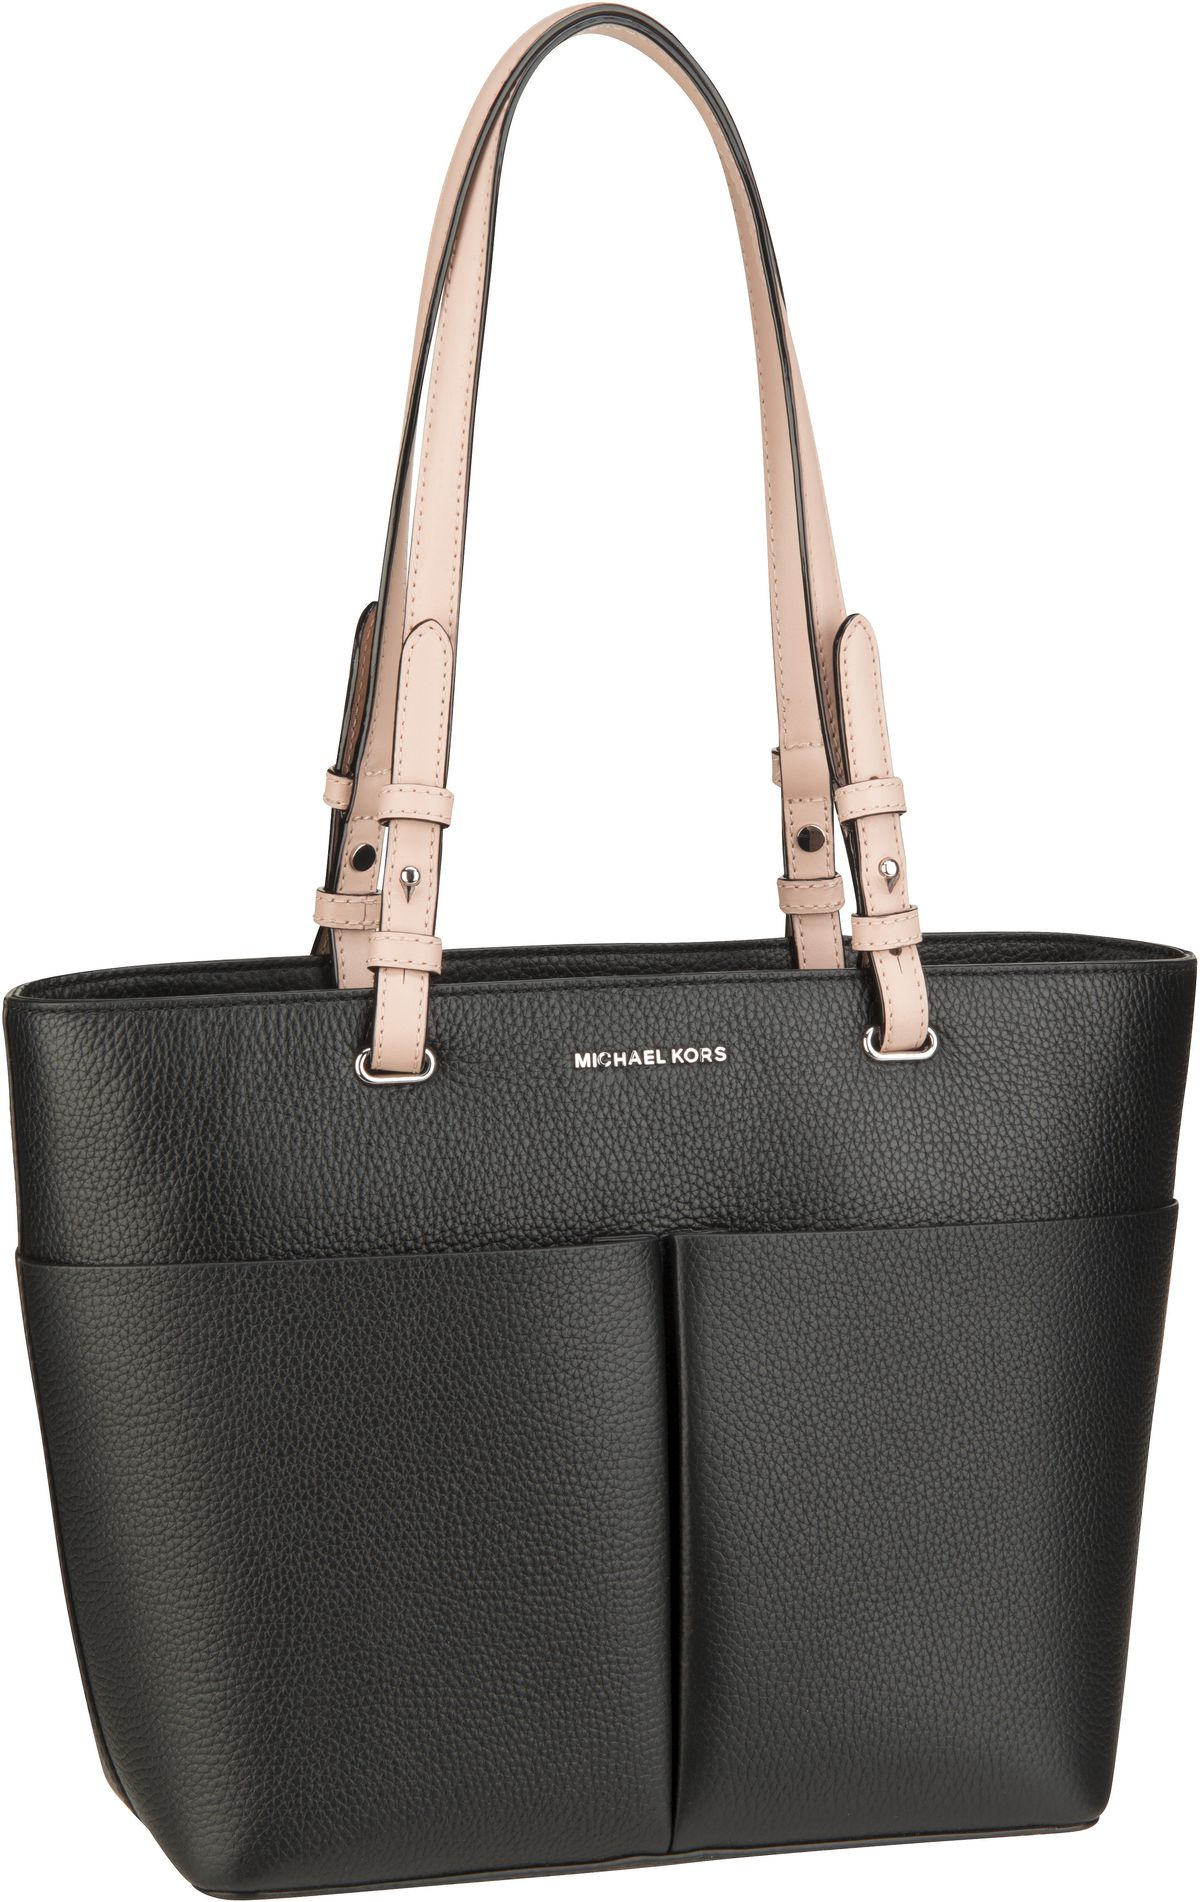 Michael Kors Handtasche Bedford Medium TZ Pocket Tote Black/Light